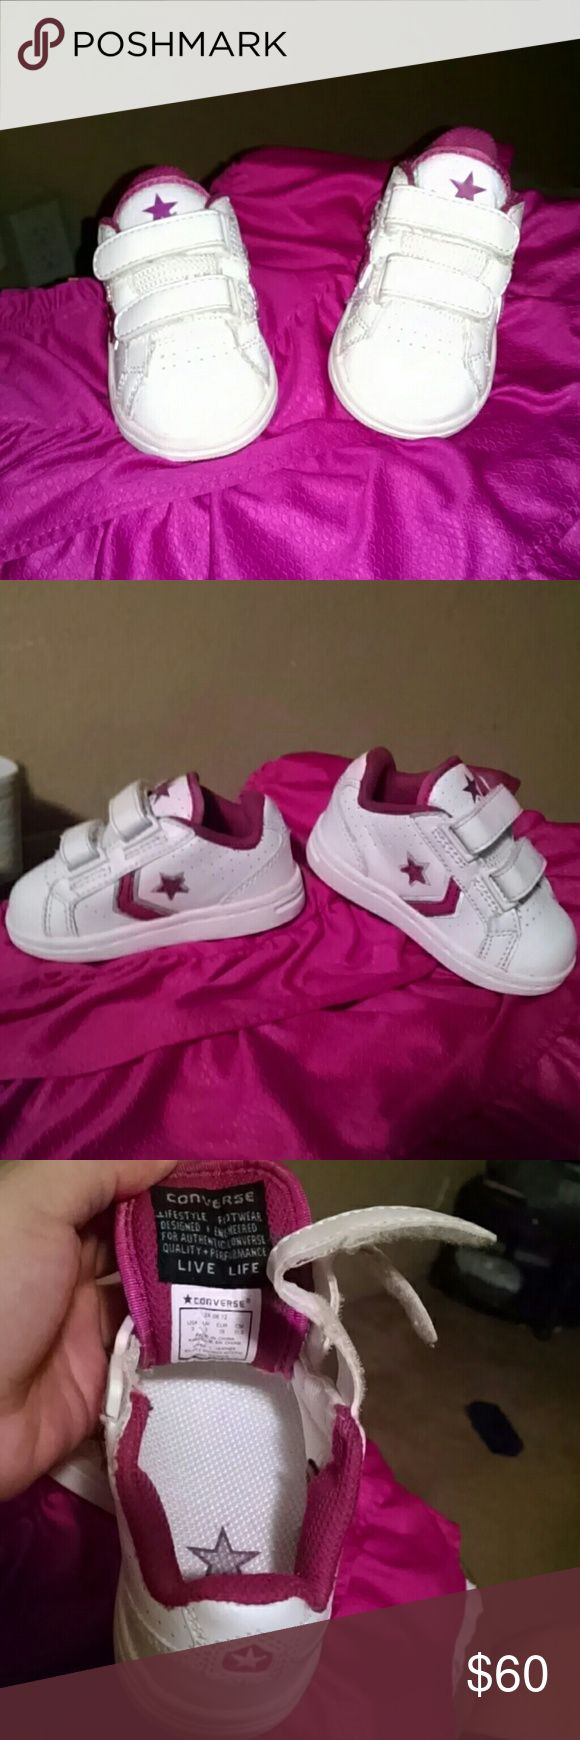 Converse shoes for baby girl Nwot Pink and white Converse Shoes